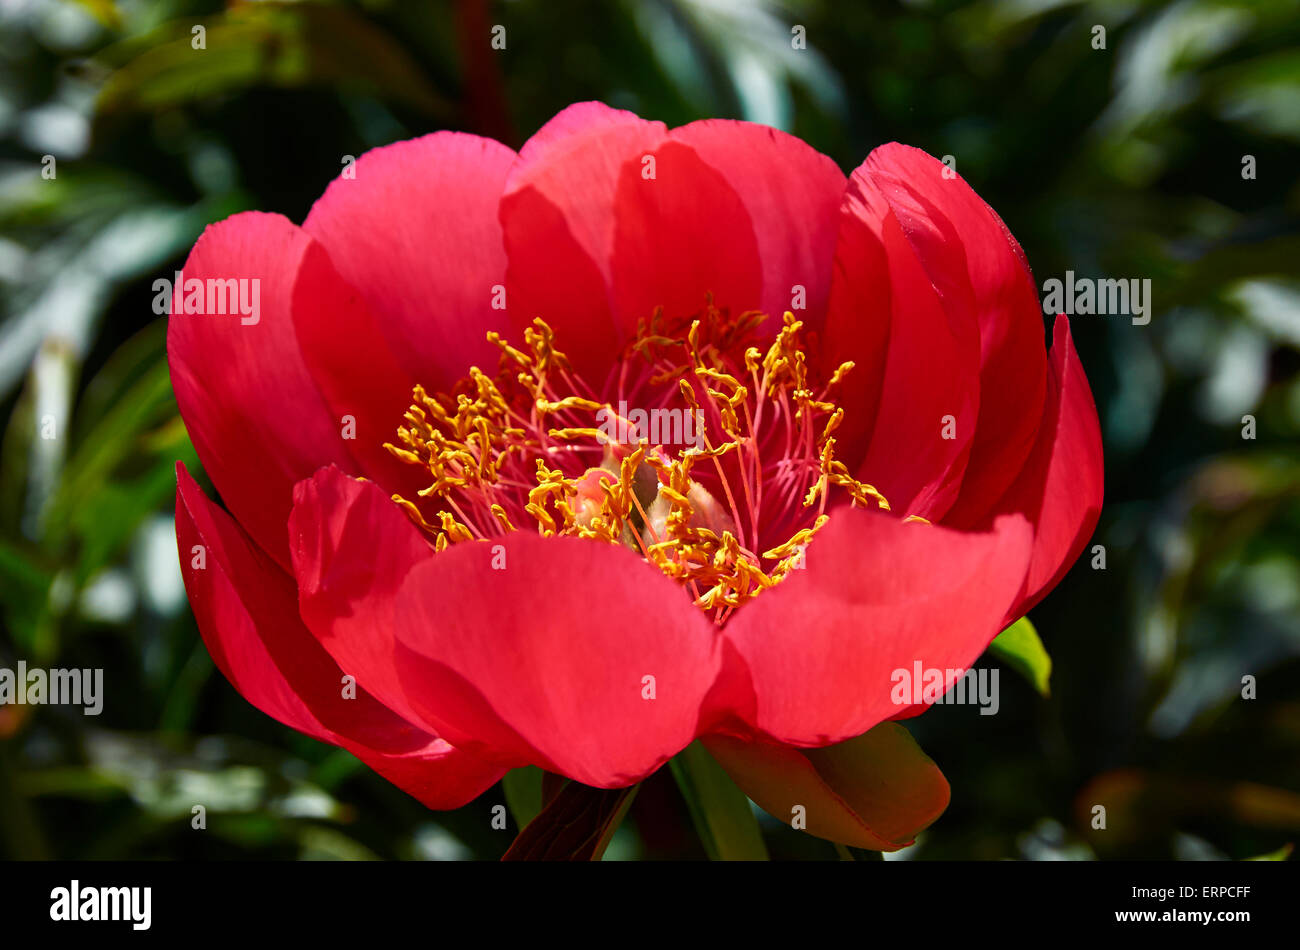 """Peony Paeonia Peregrina """"OttoFroebal"""". A May flowering peony in May with single blooms, cup shaped, in bright scarlet red. Stock Photo"""